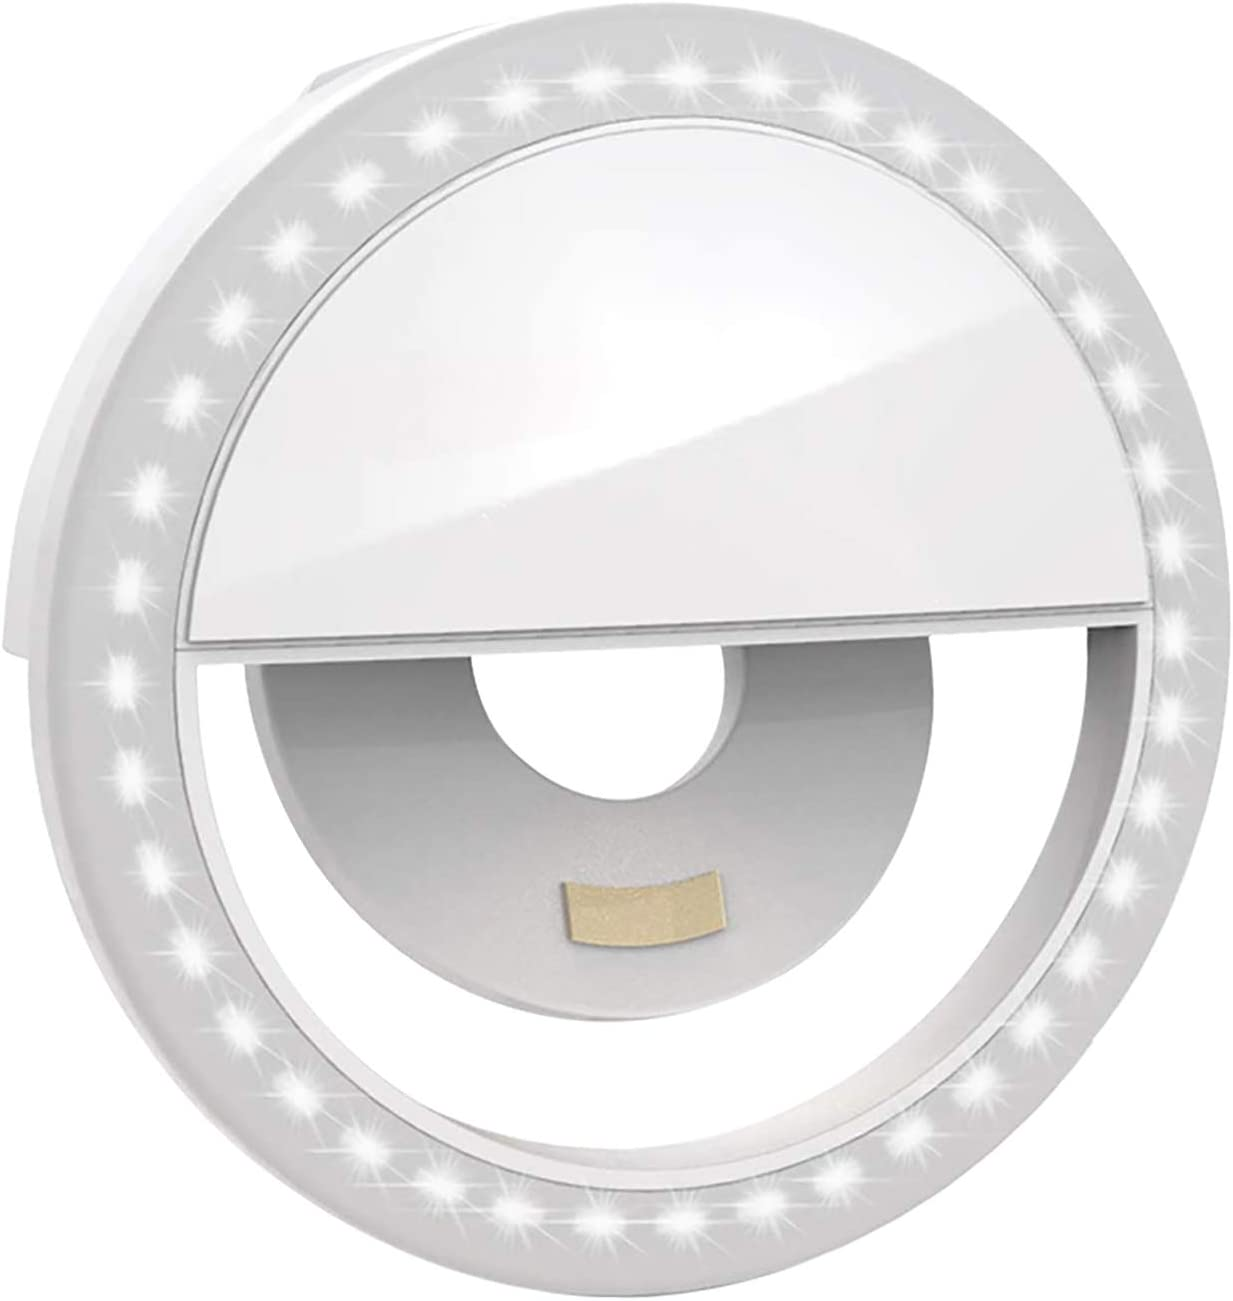 Decosta Tech Ring Light - The Perfect Selfie Ring Light or Lighting for Video Conference Calls - A Clip on Ring Light for Phones and laptops or Tablets